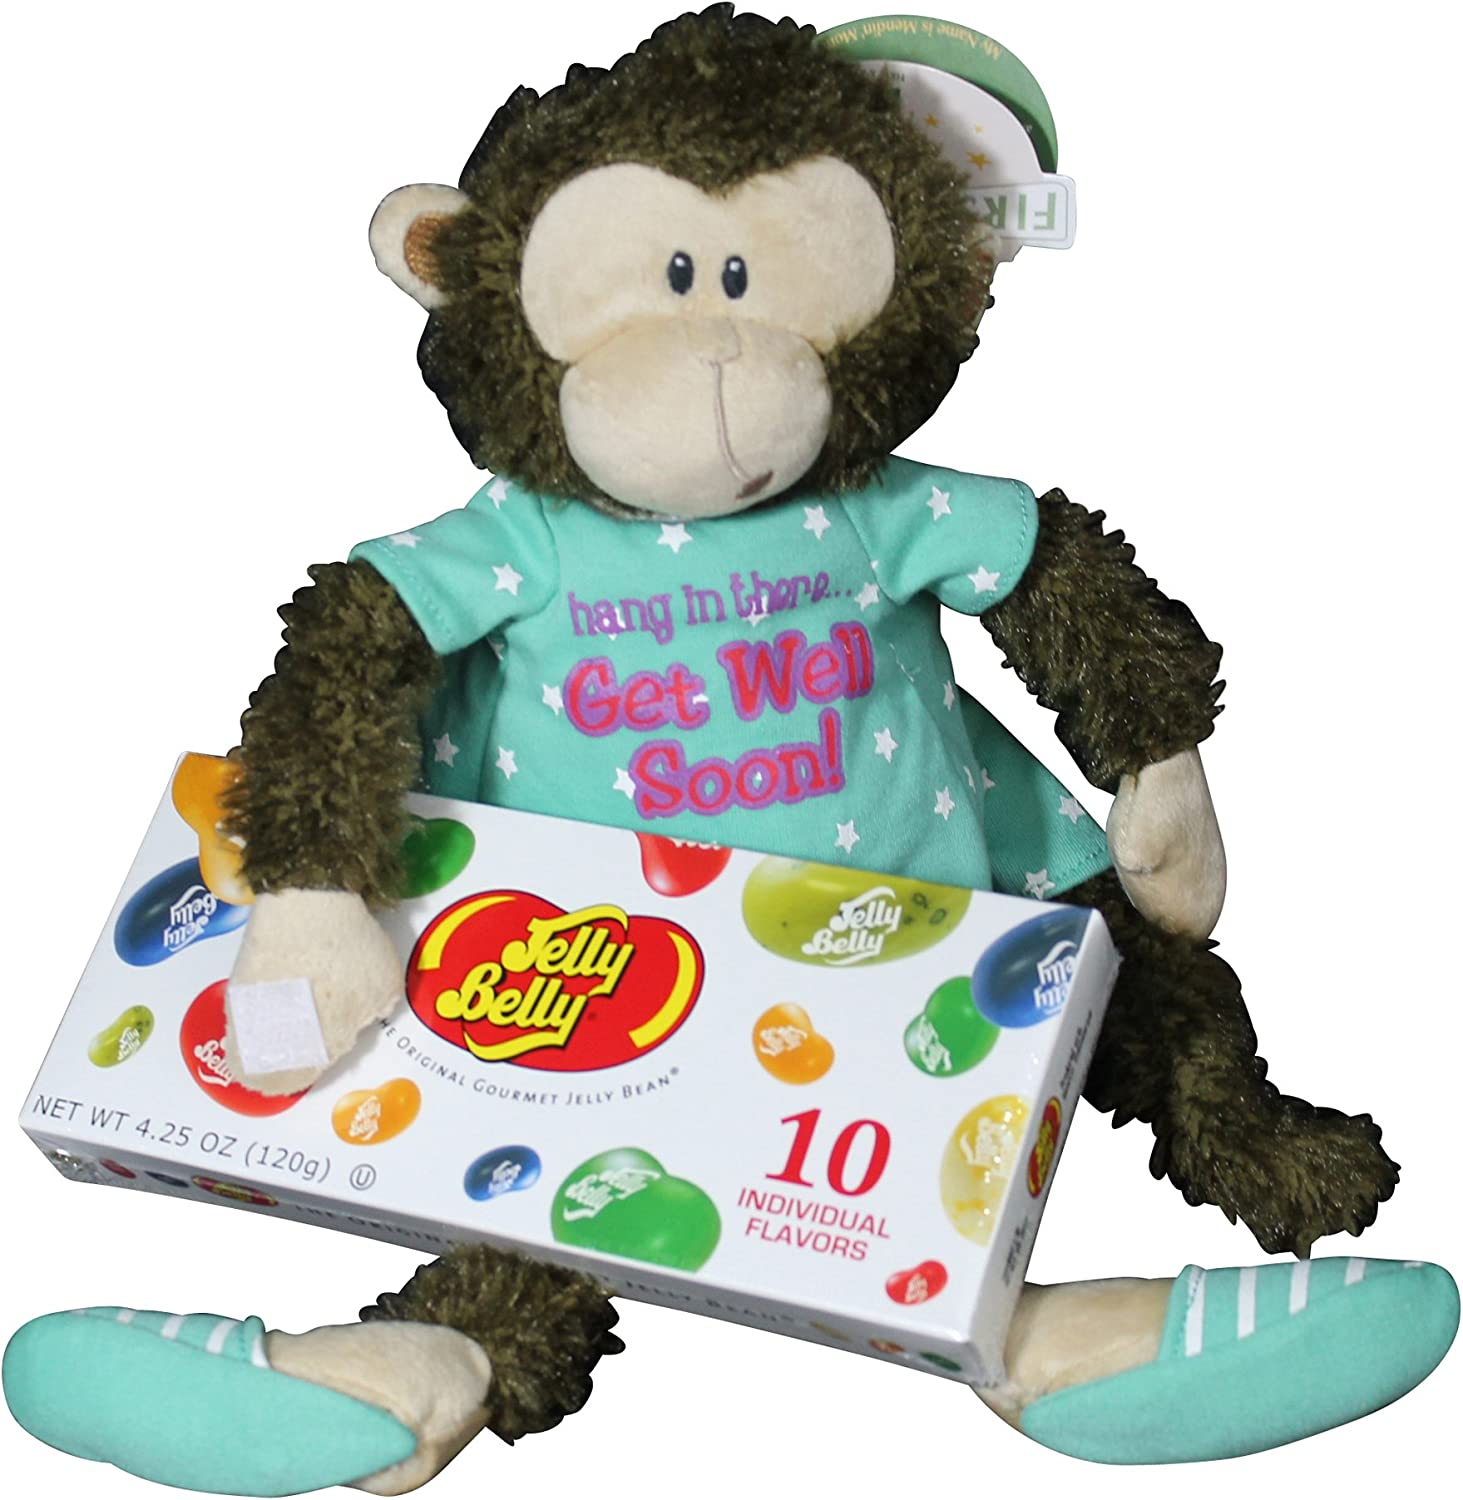 Get Well Gifts  8 Cuddly Marvin Monkey Hang In There Plush Get Well Soon Gift with Jelly Belly Jelly Beans